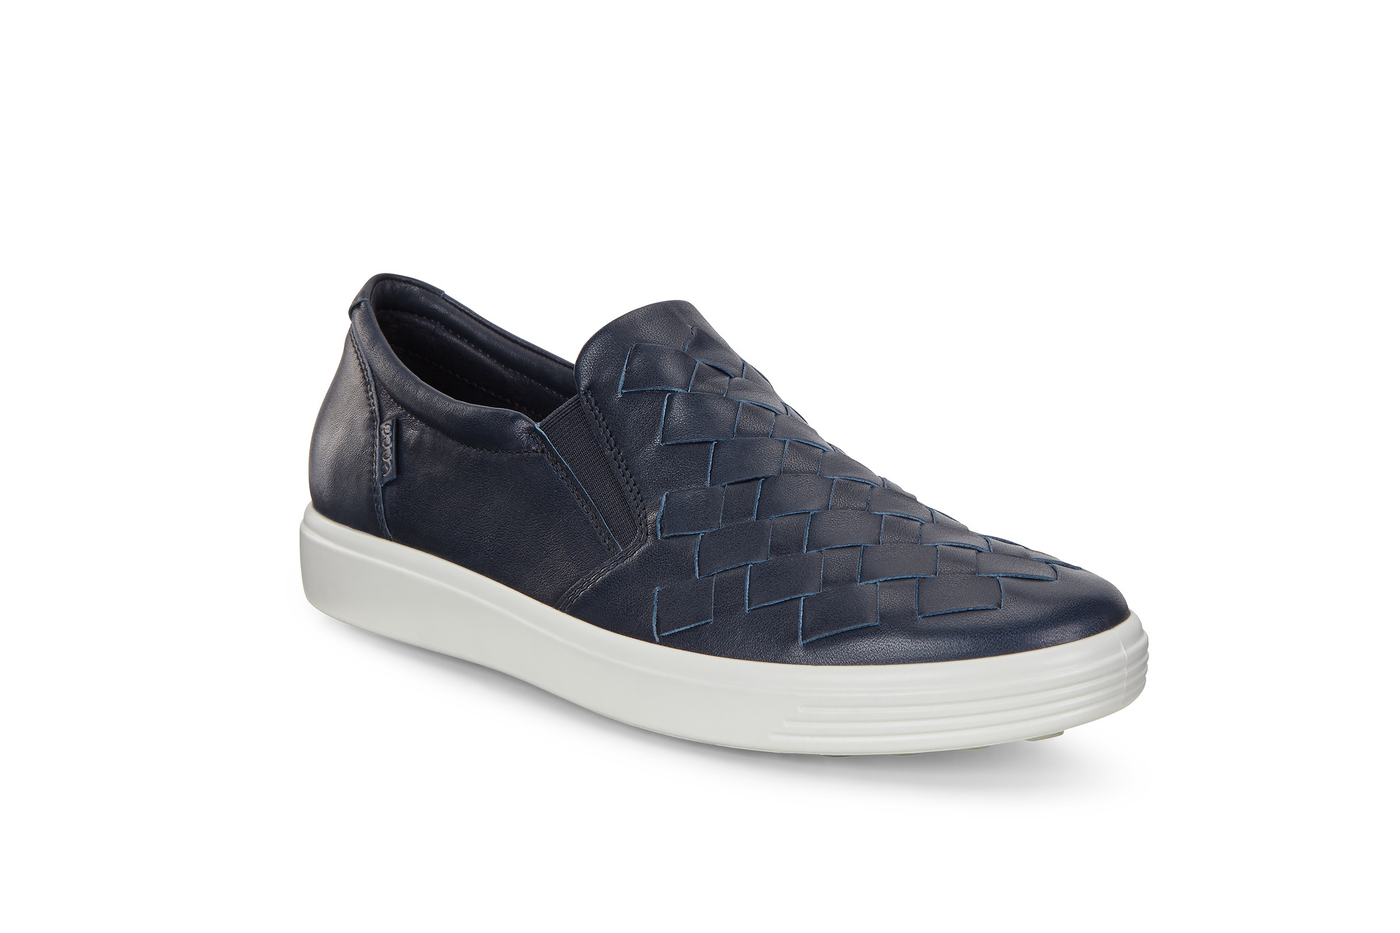 ECCO SOFT 7 Women's Woven Slip On